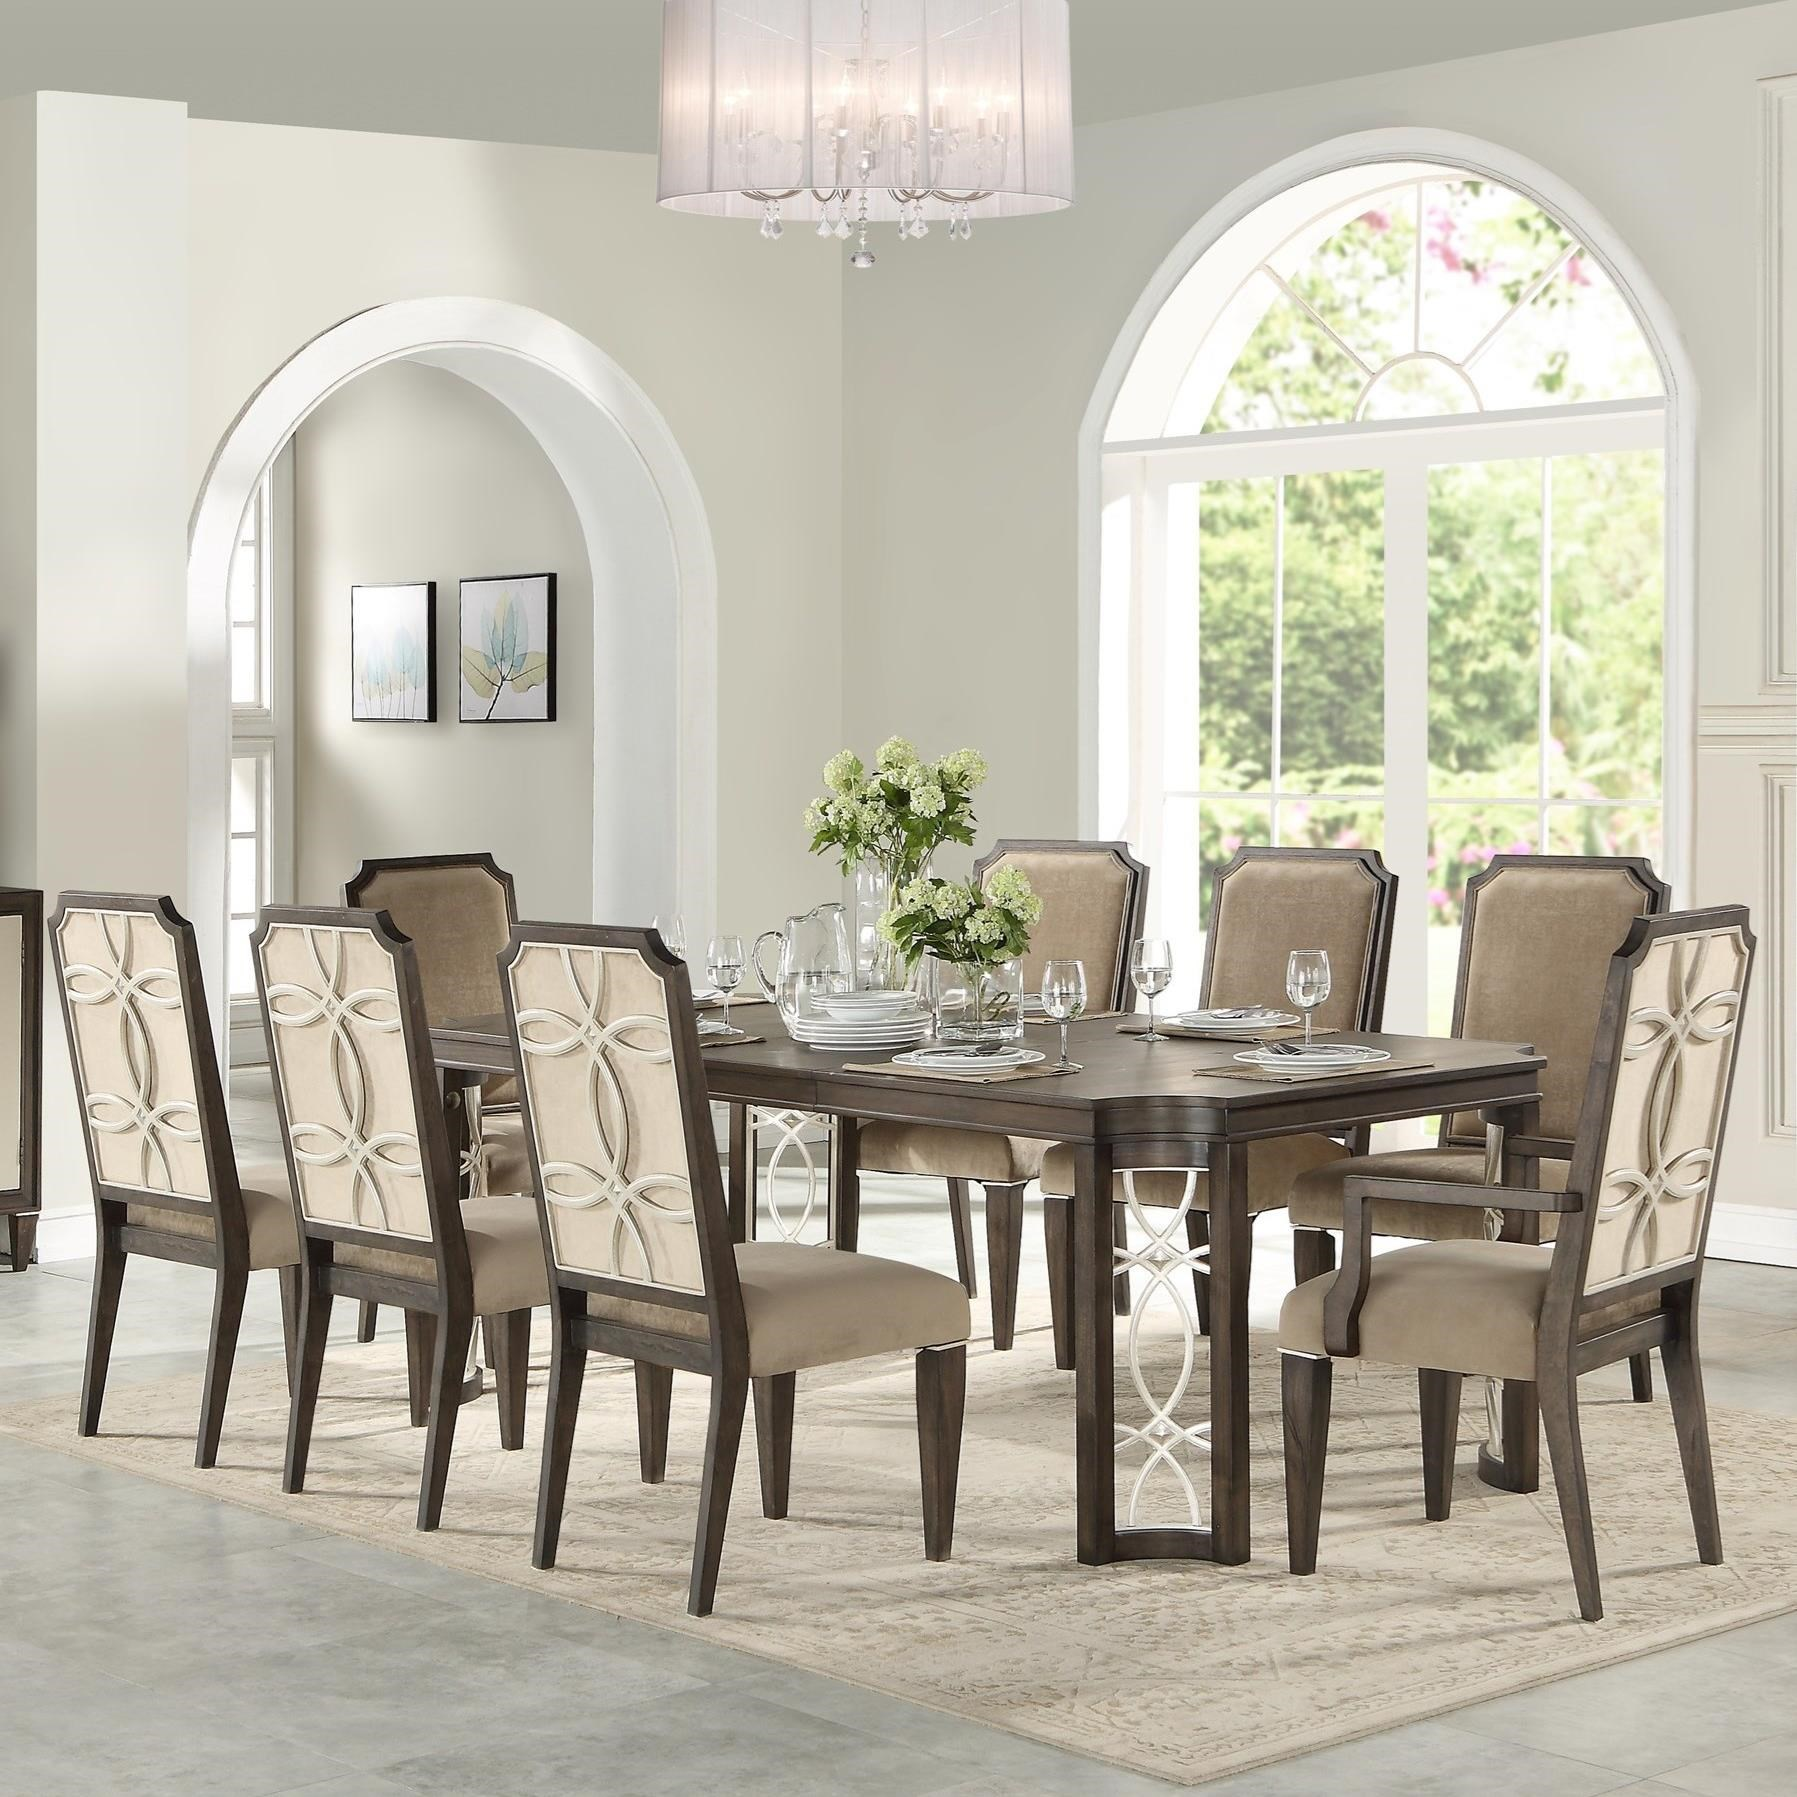 9 piece dining table and chairs